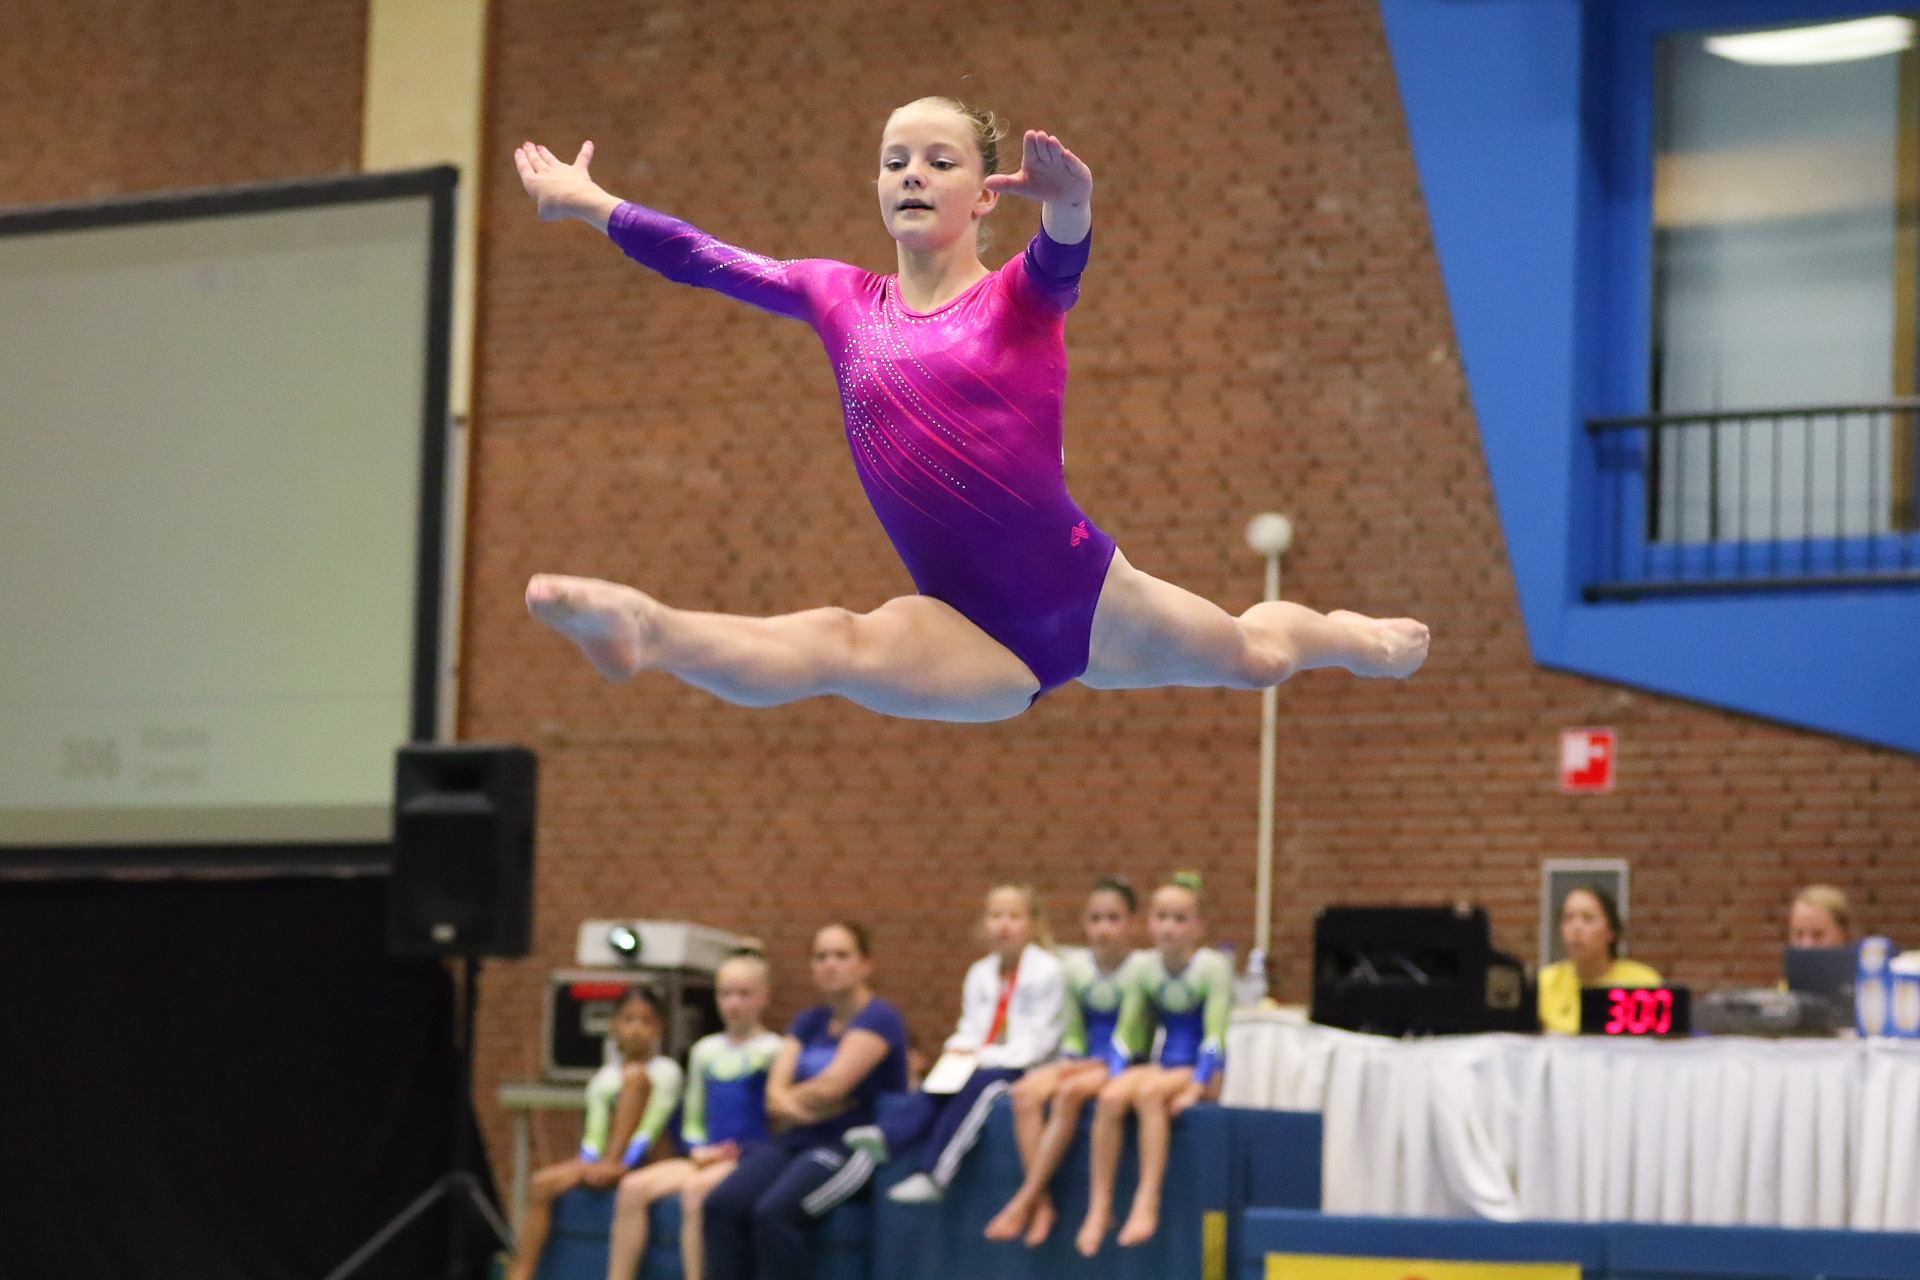 A Look at the Different Types of Gymnastics